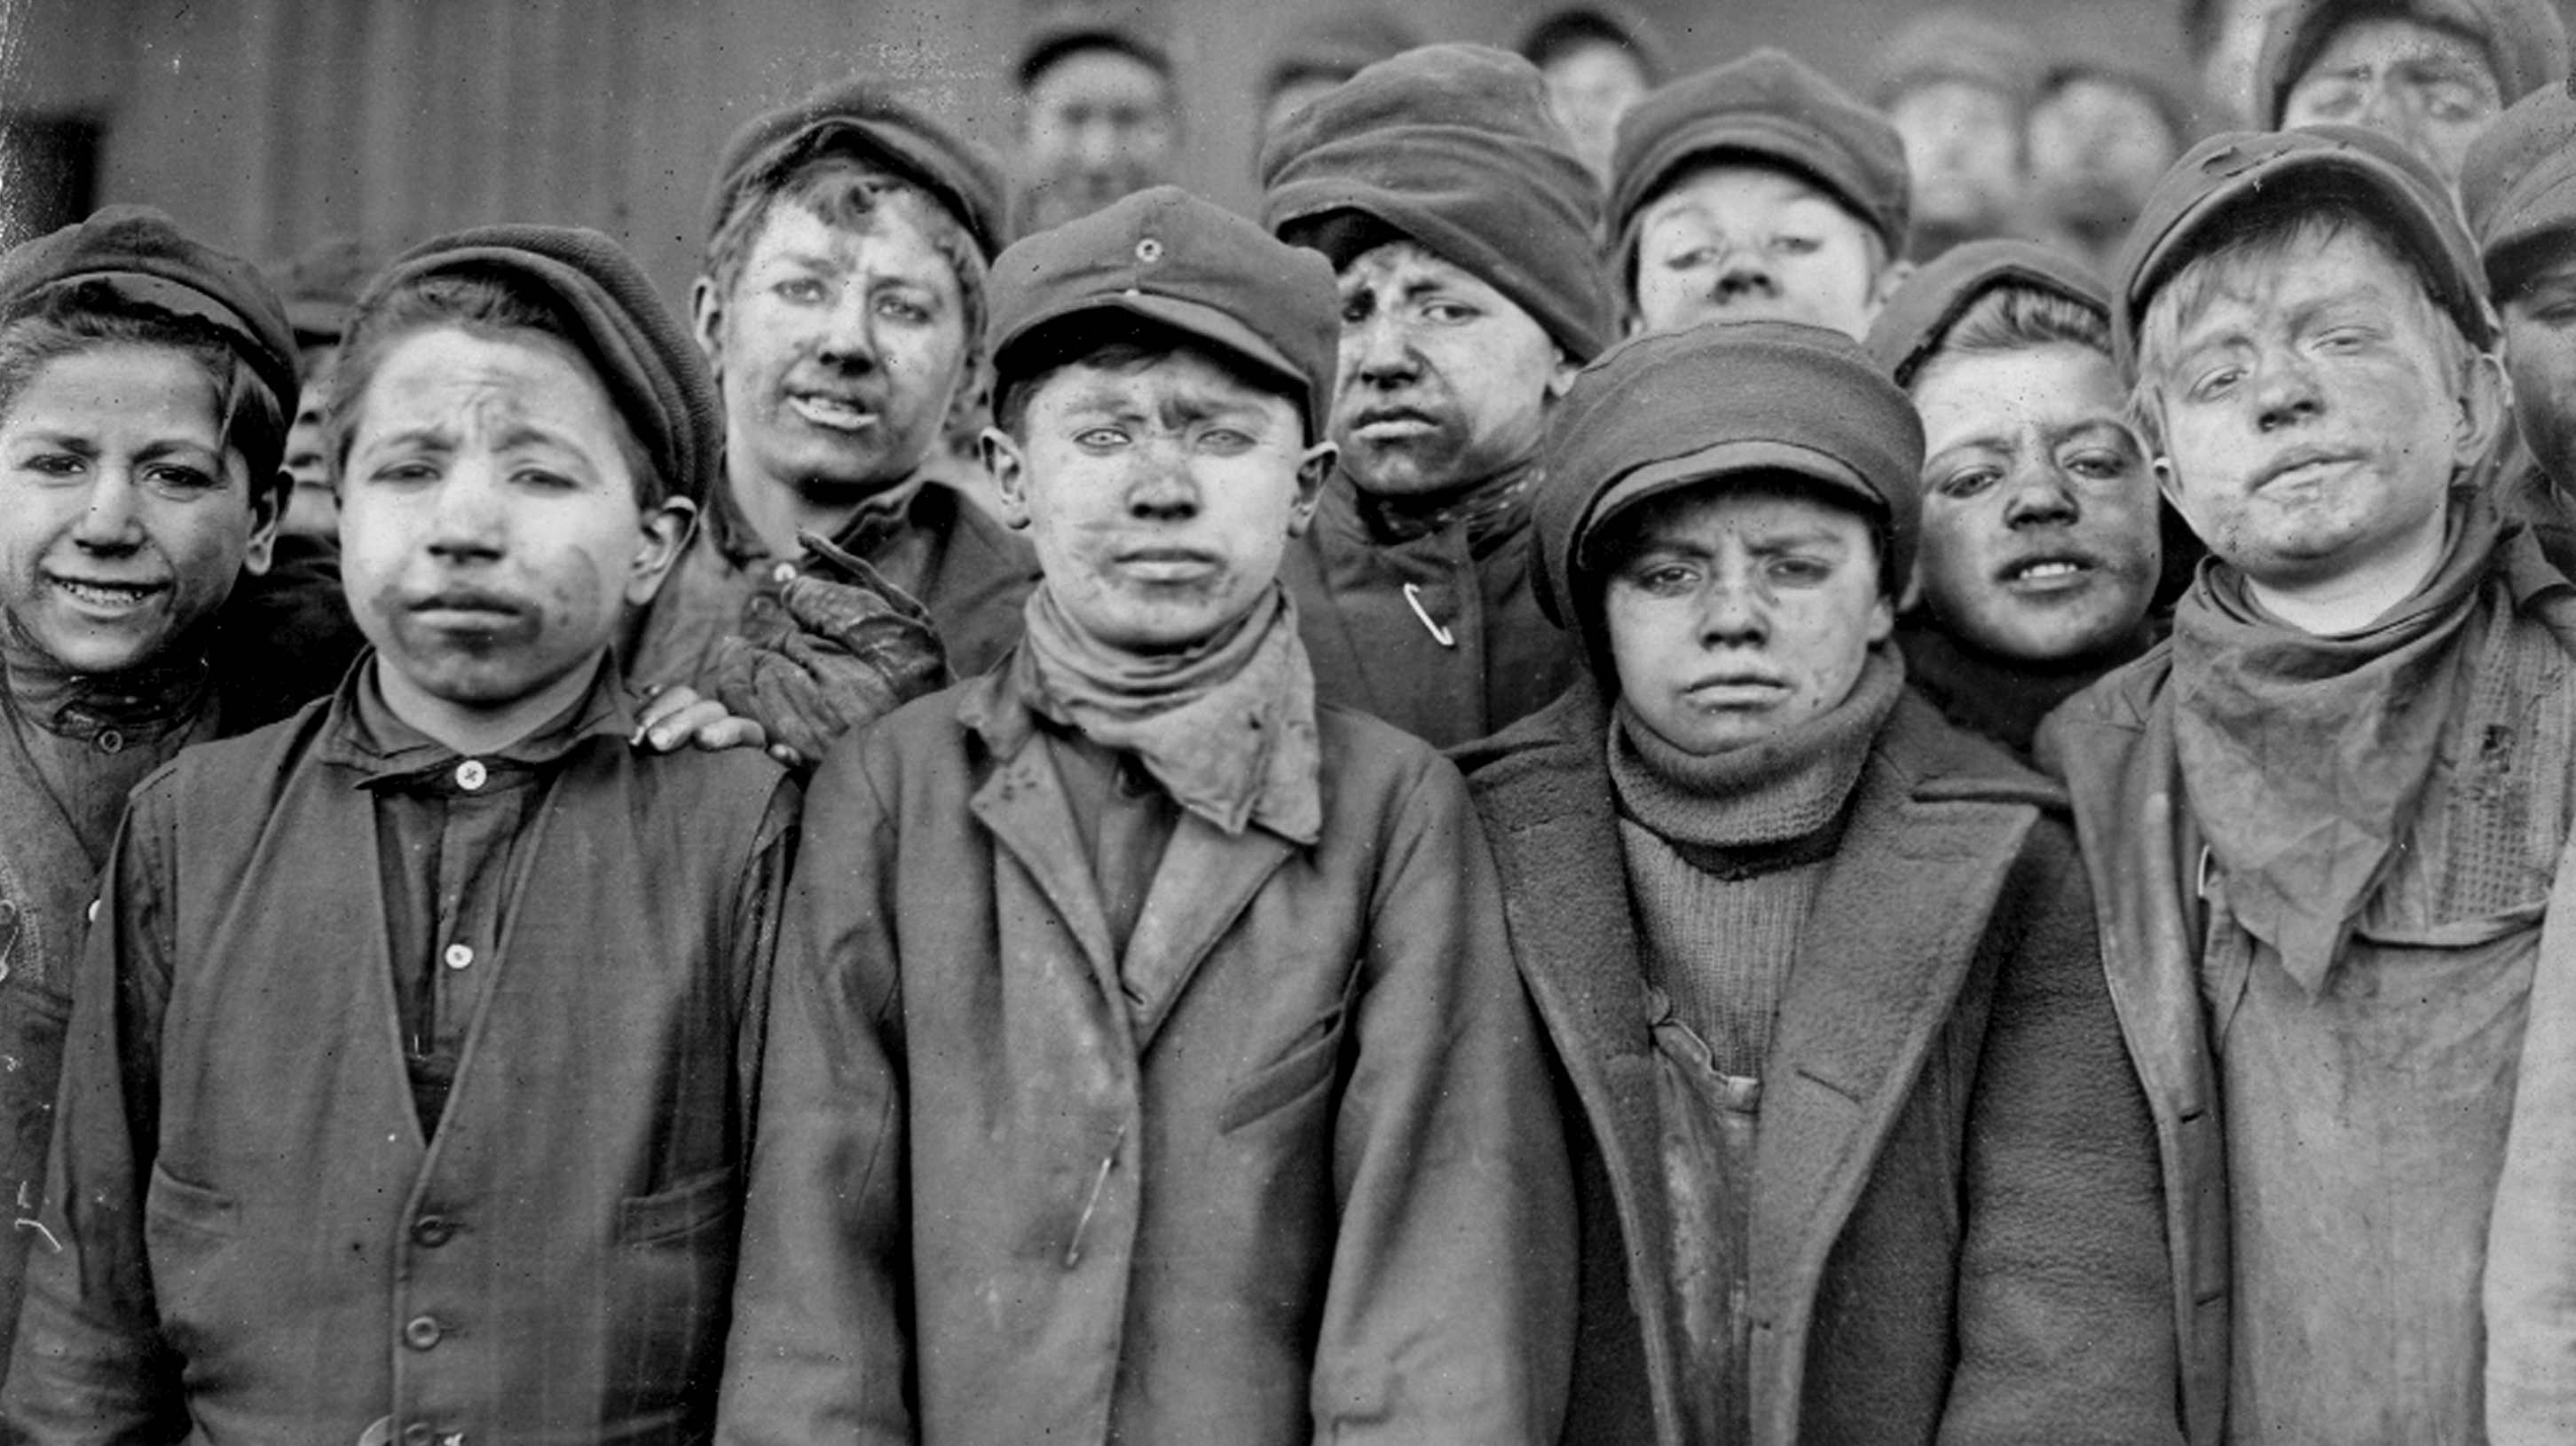 Breaker boys working in South Pittston, Penn. coal fields. Image: Lewis Hines/Library of Congress.